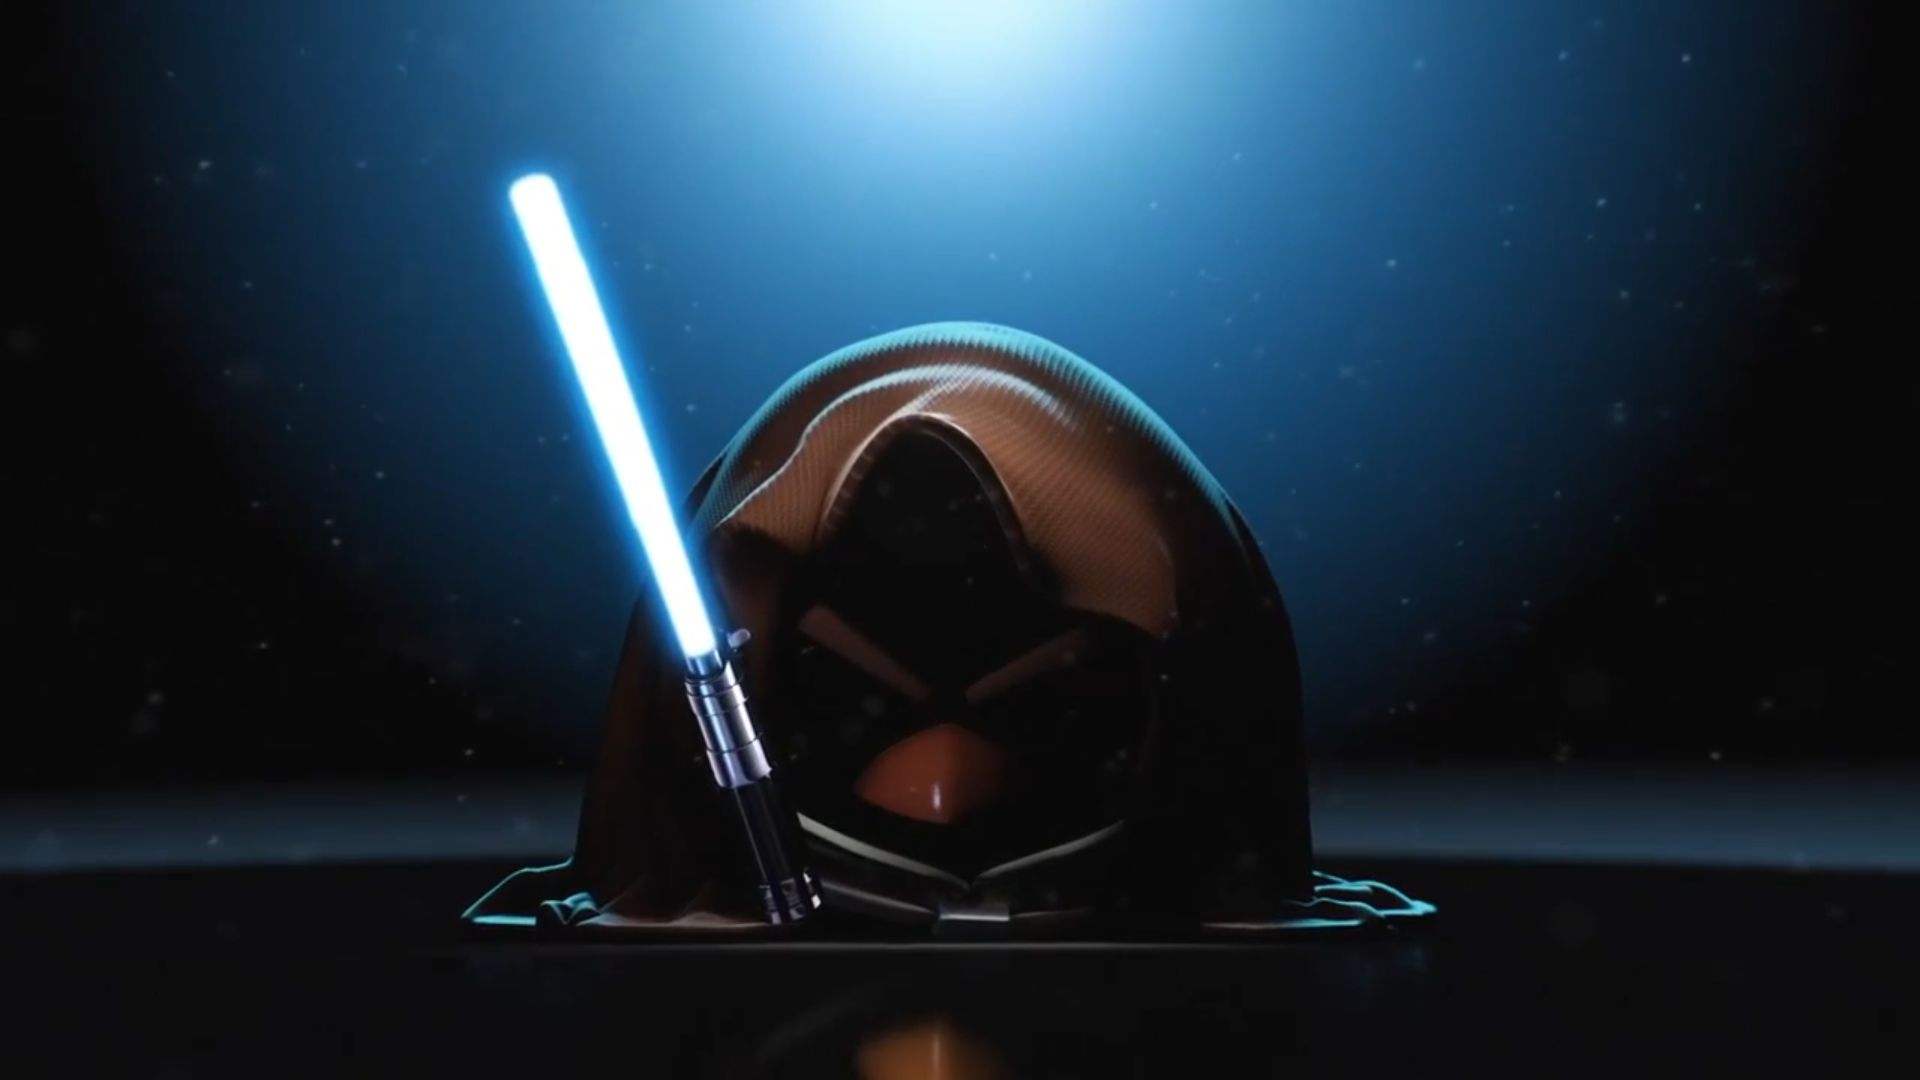 Angry birds star wars wallpaper 3 - Angry birds star wars 8 ...